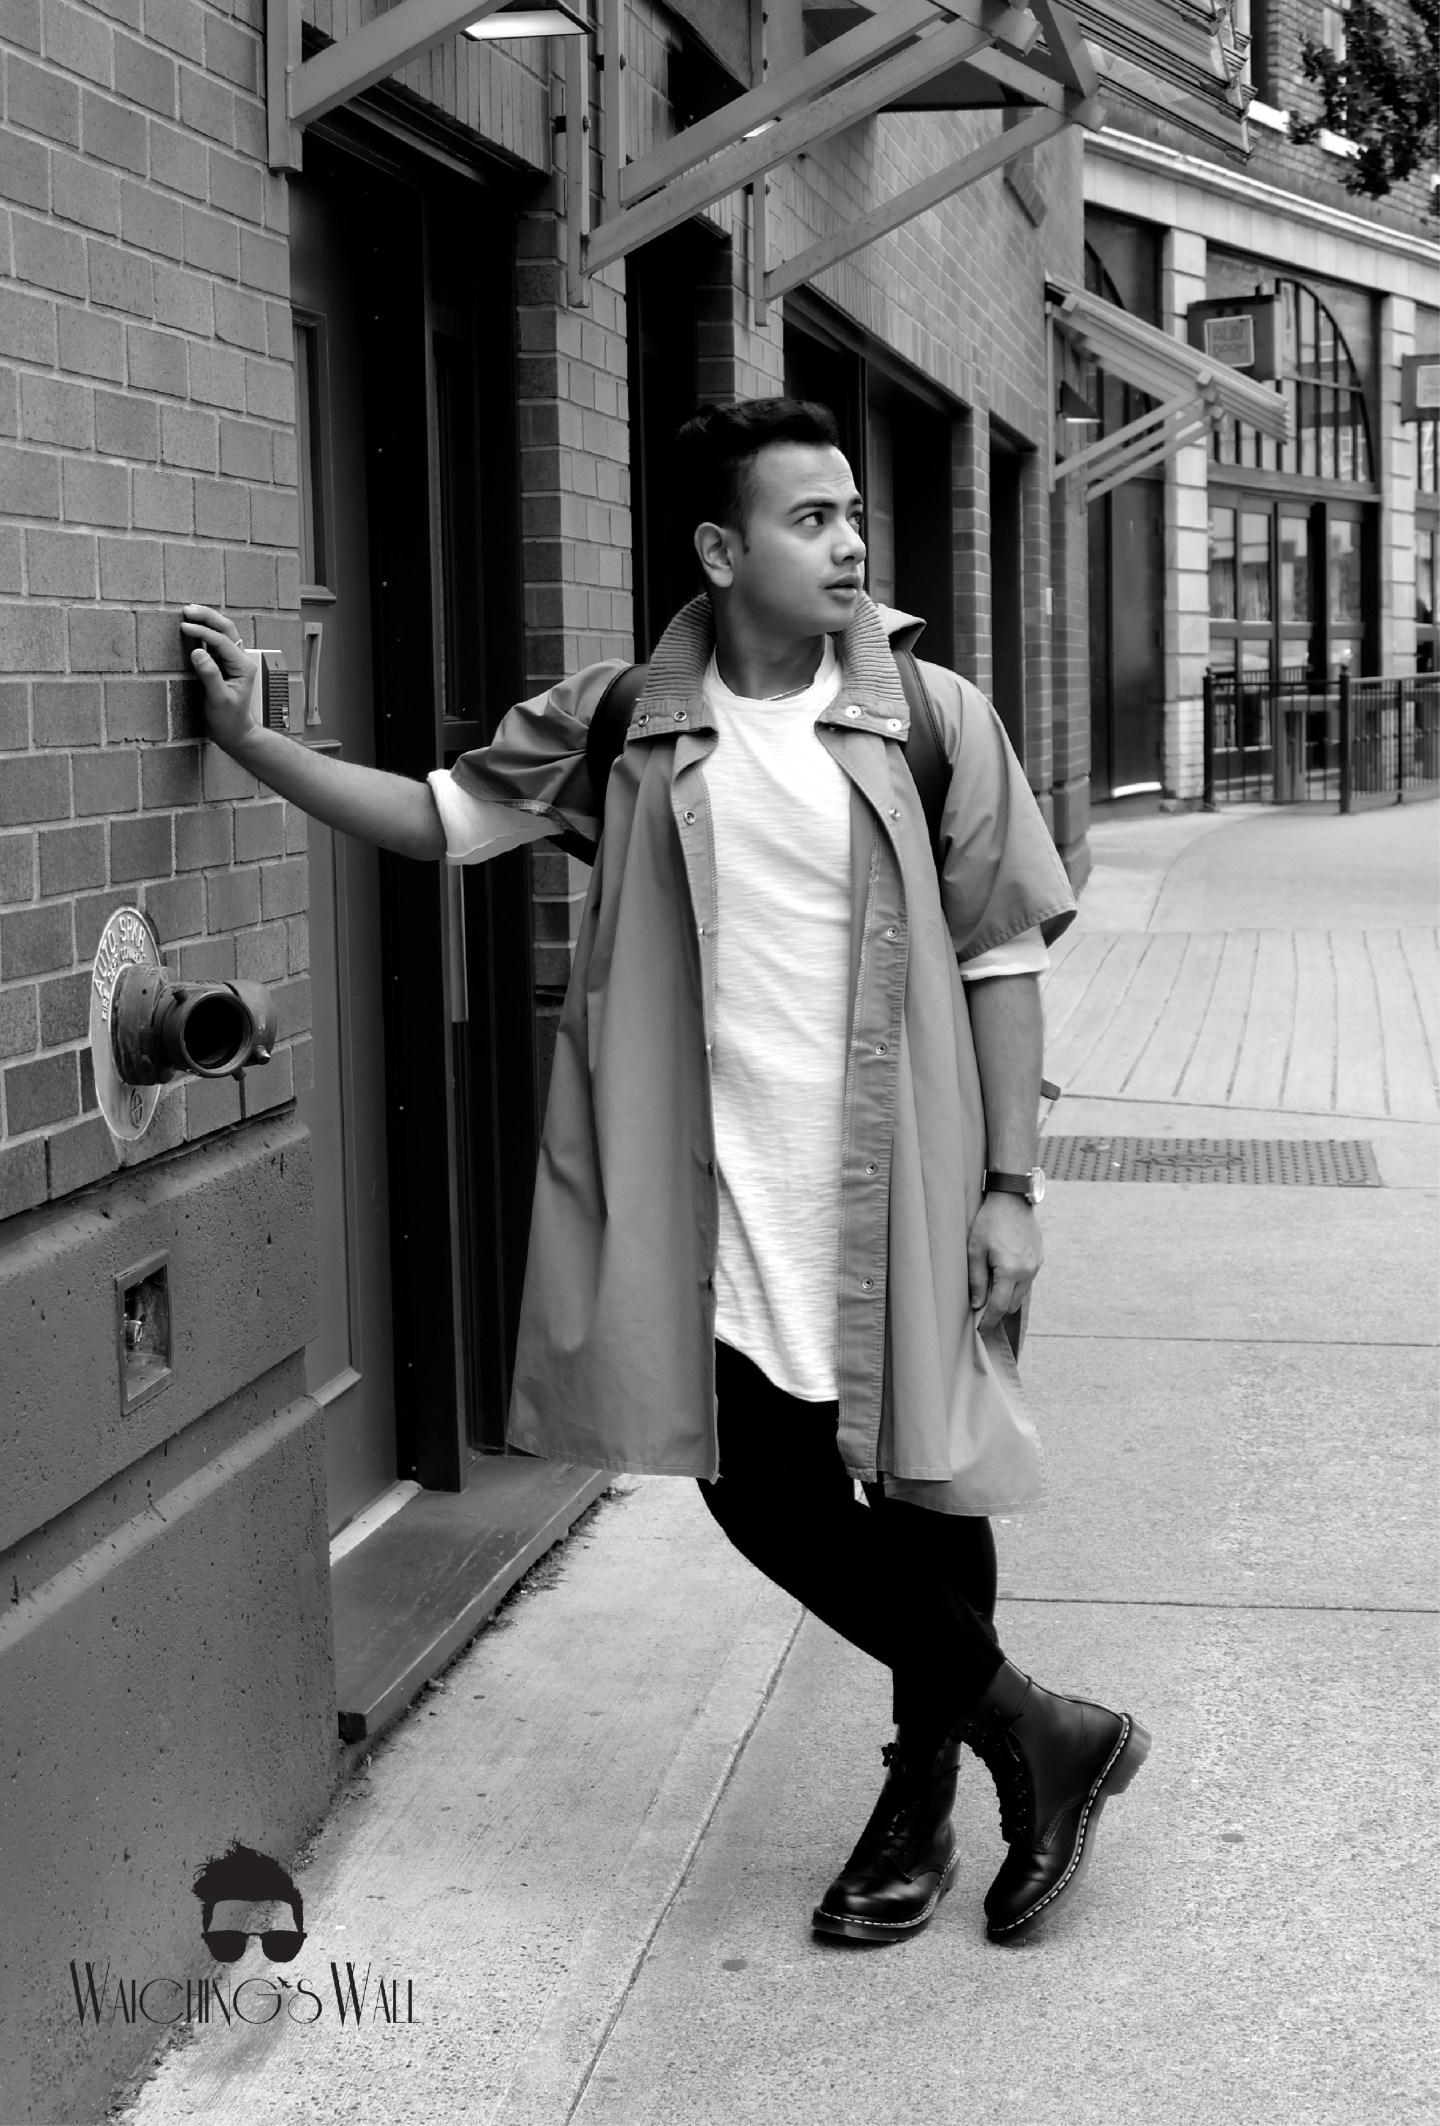 jonathan-waiching-ho_premium-mens-fashion-blogger-vancouver-canda_waichings-wall-06